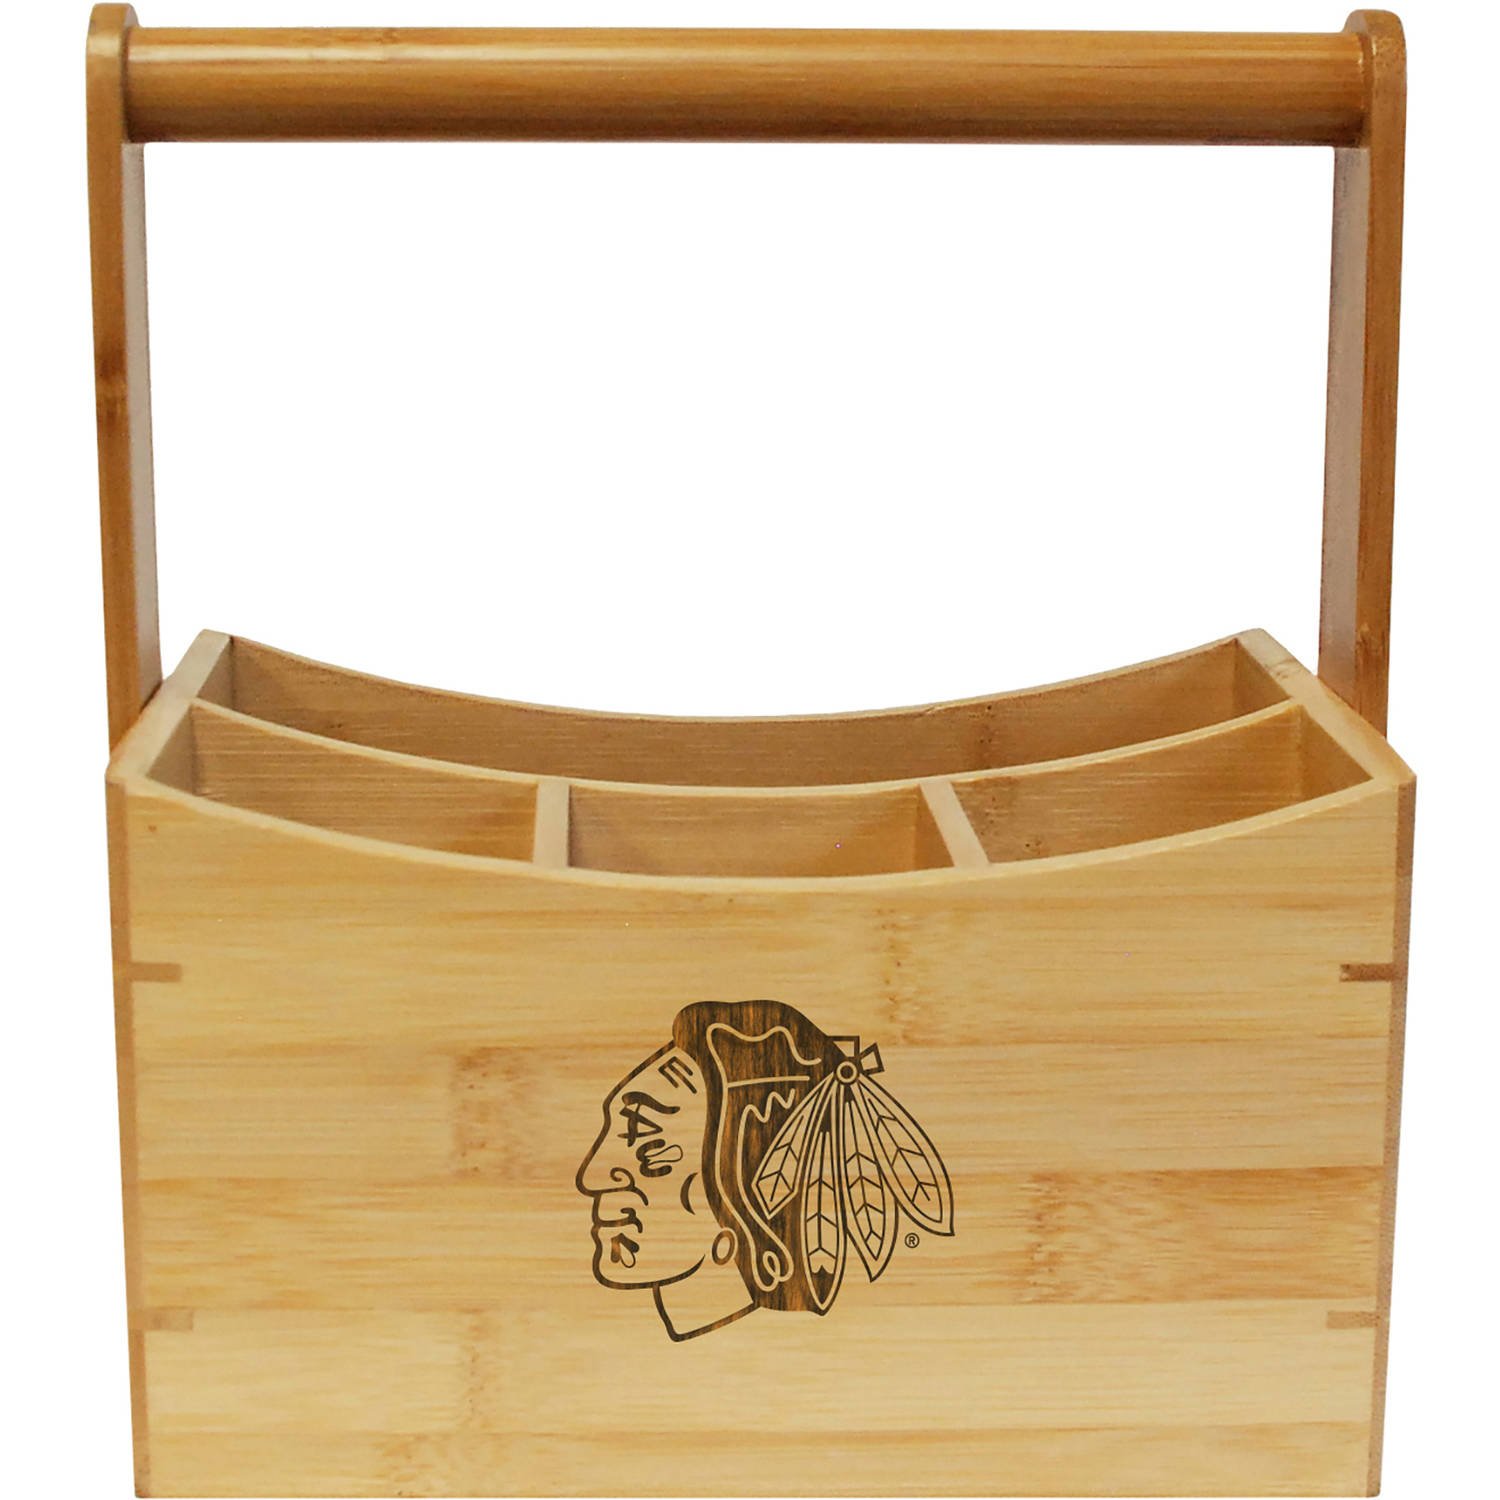 NHL Team Engraved Bamboo Utensil Caddy by